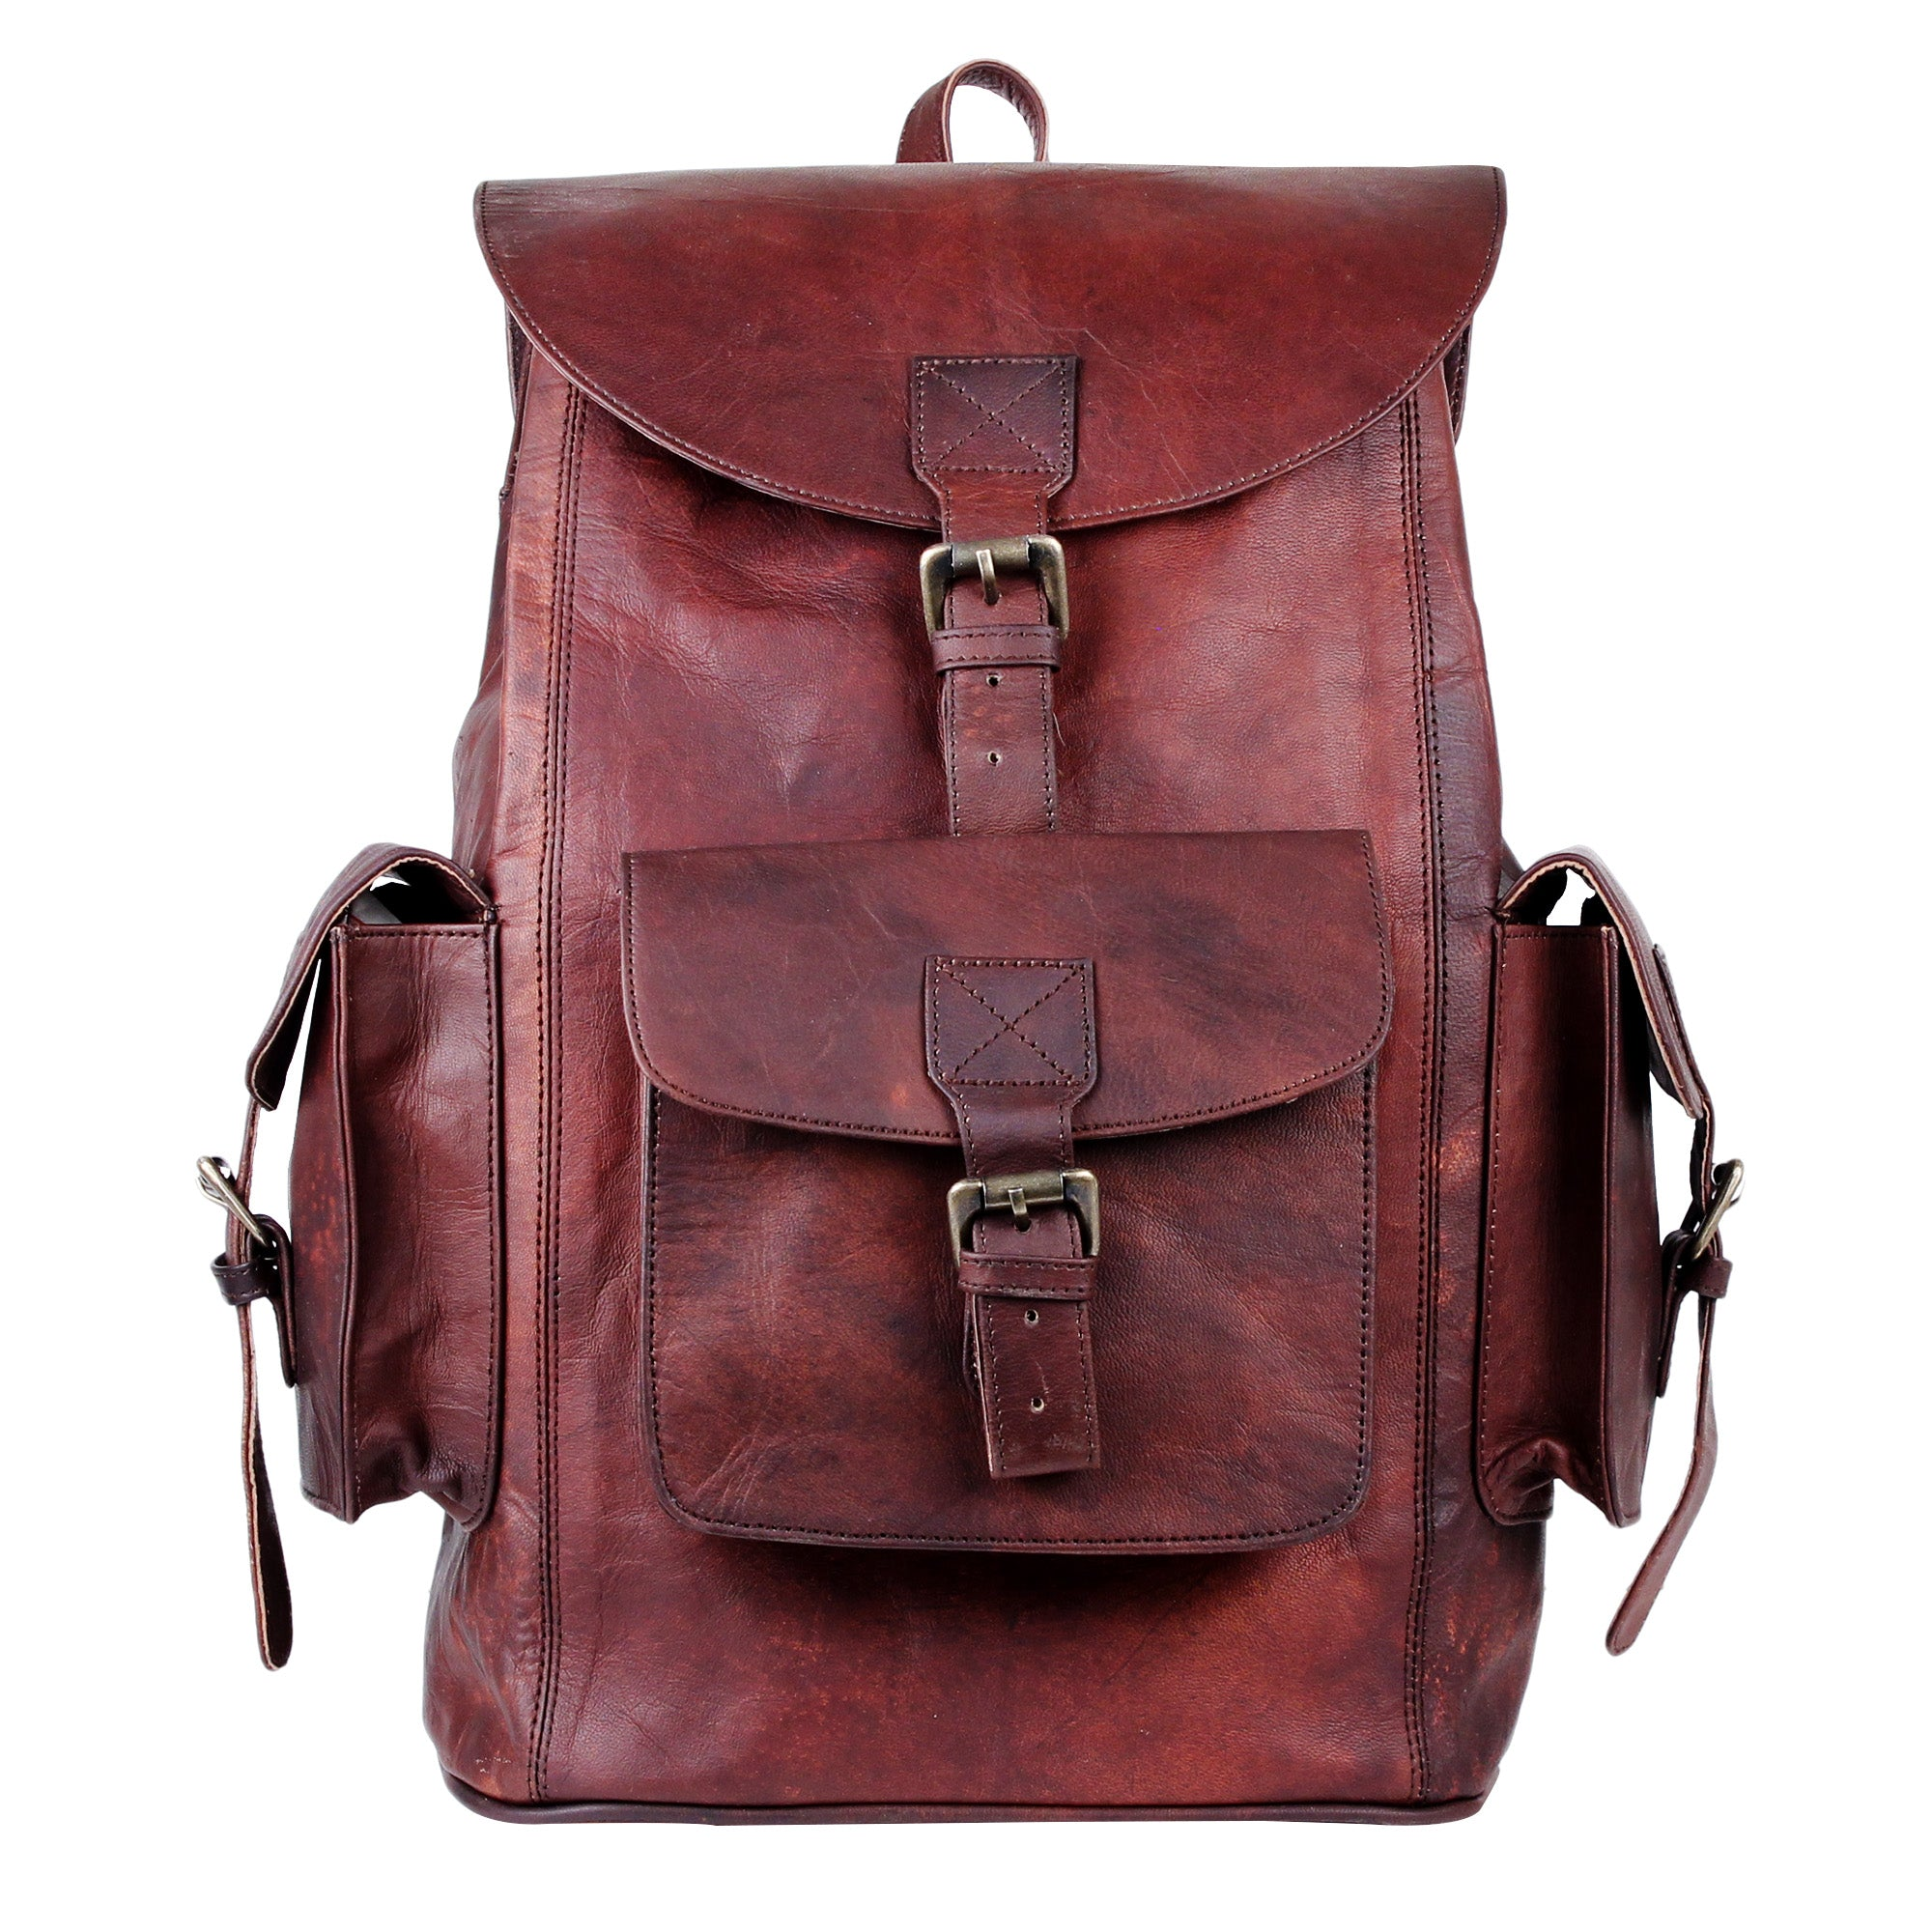 Vintage Leather Messenger bag with Side Pockets